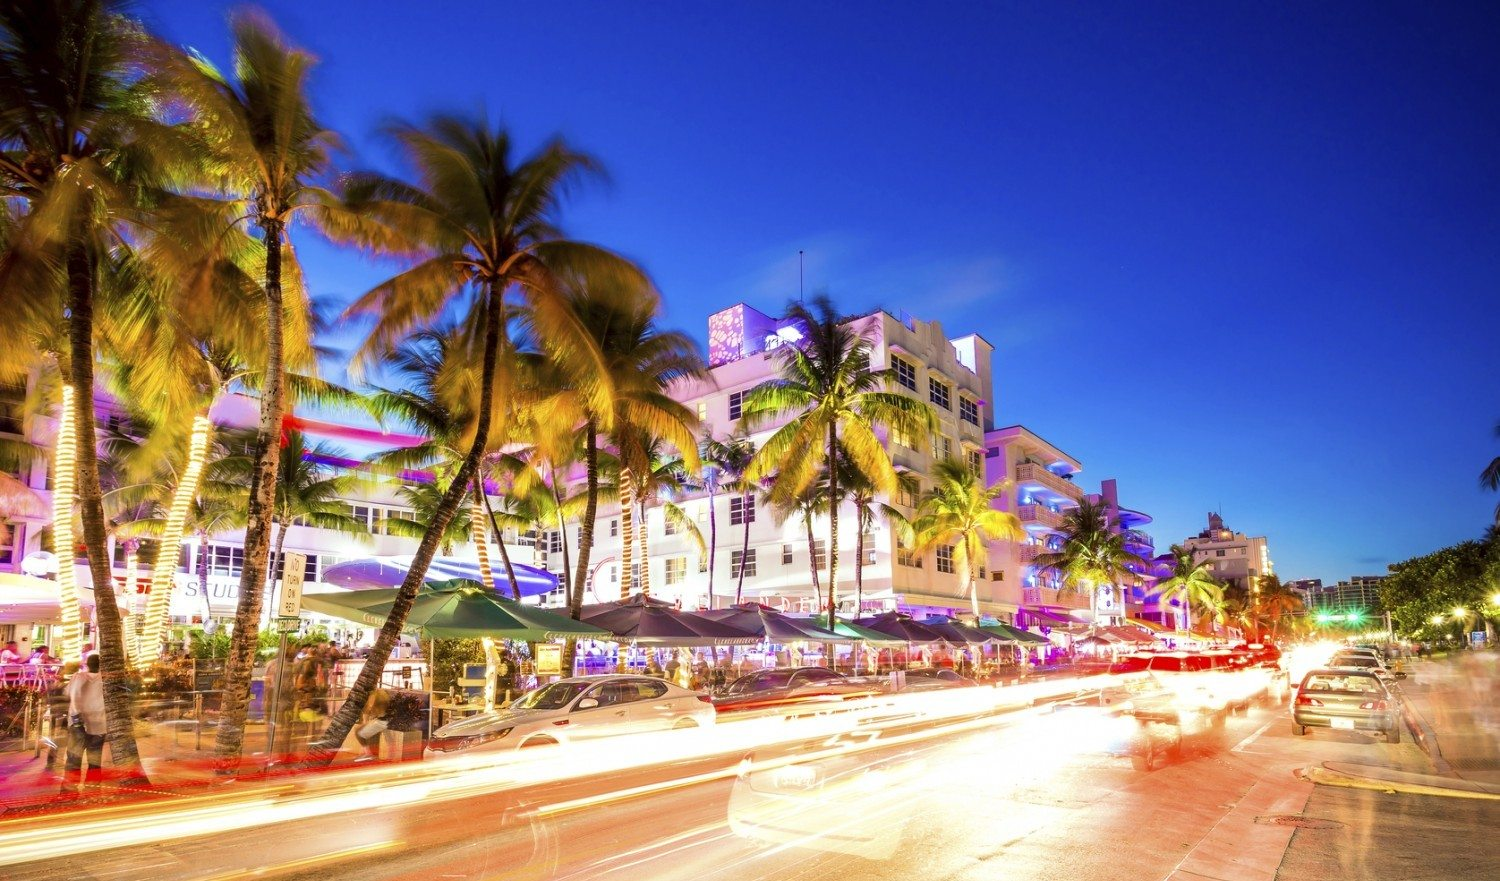 Ocean Drive scene at night lights, cars and people having fun, Miami beach. La noche de Ocean Drive en Miami Beach, Florida, Estados Unidos.